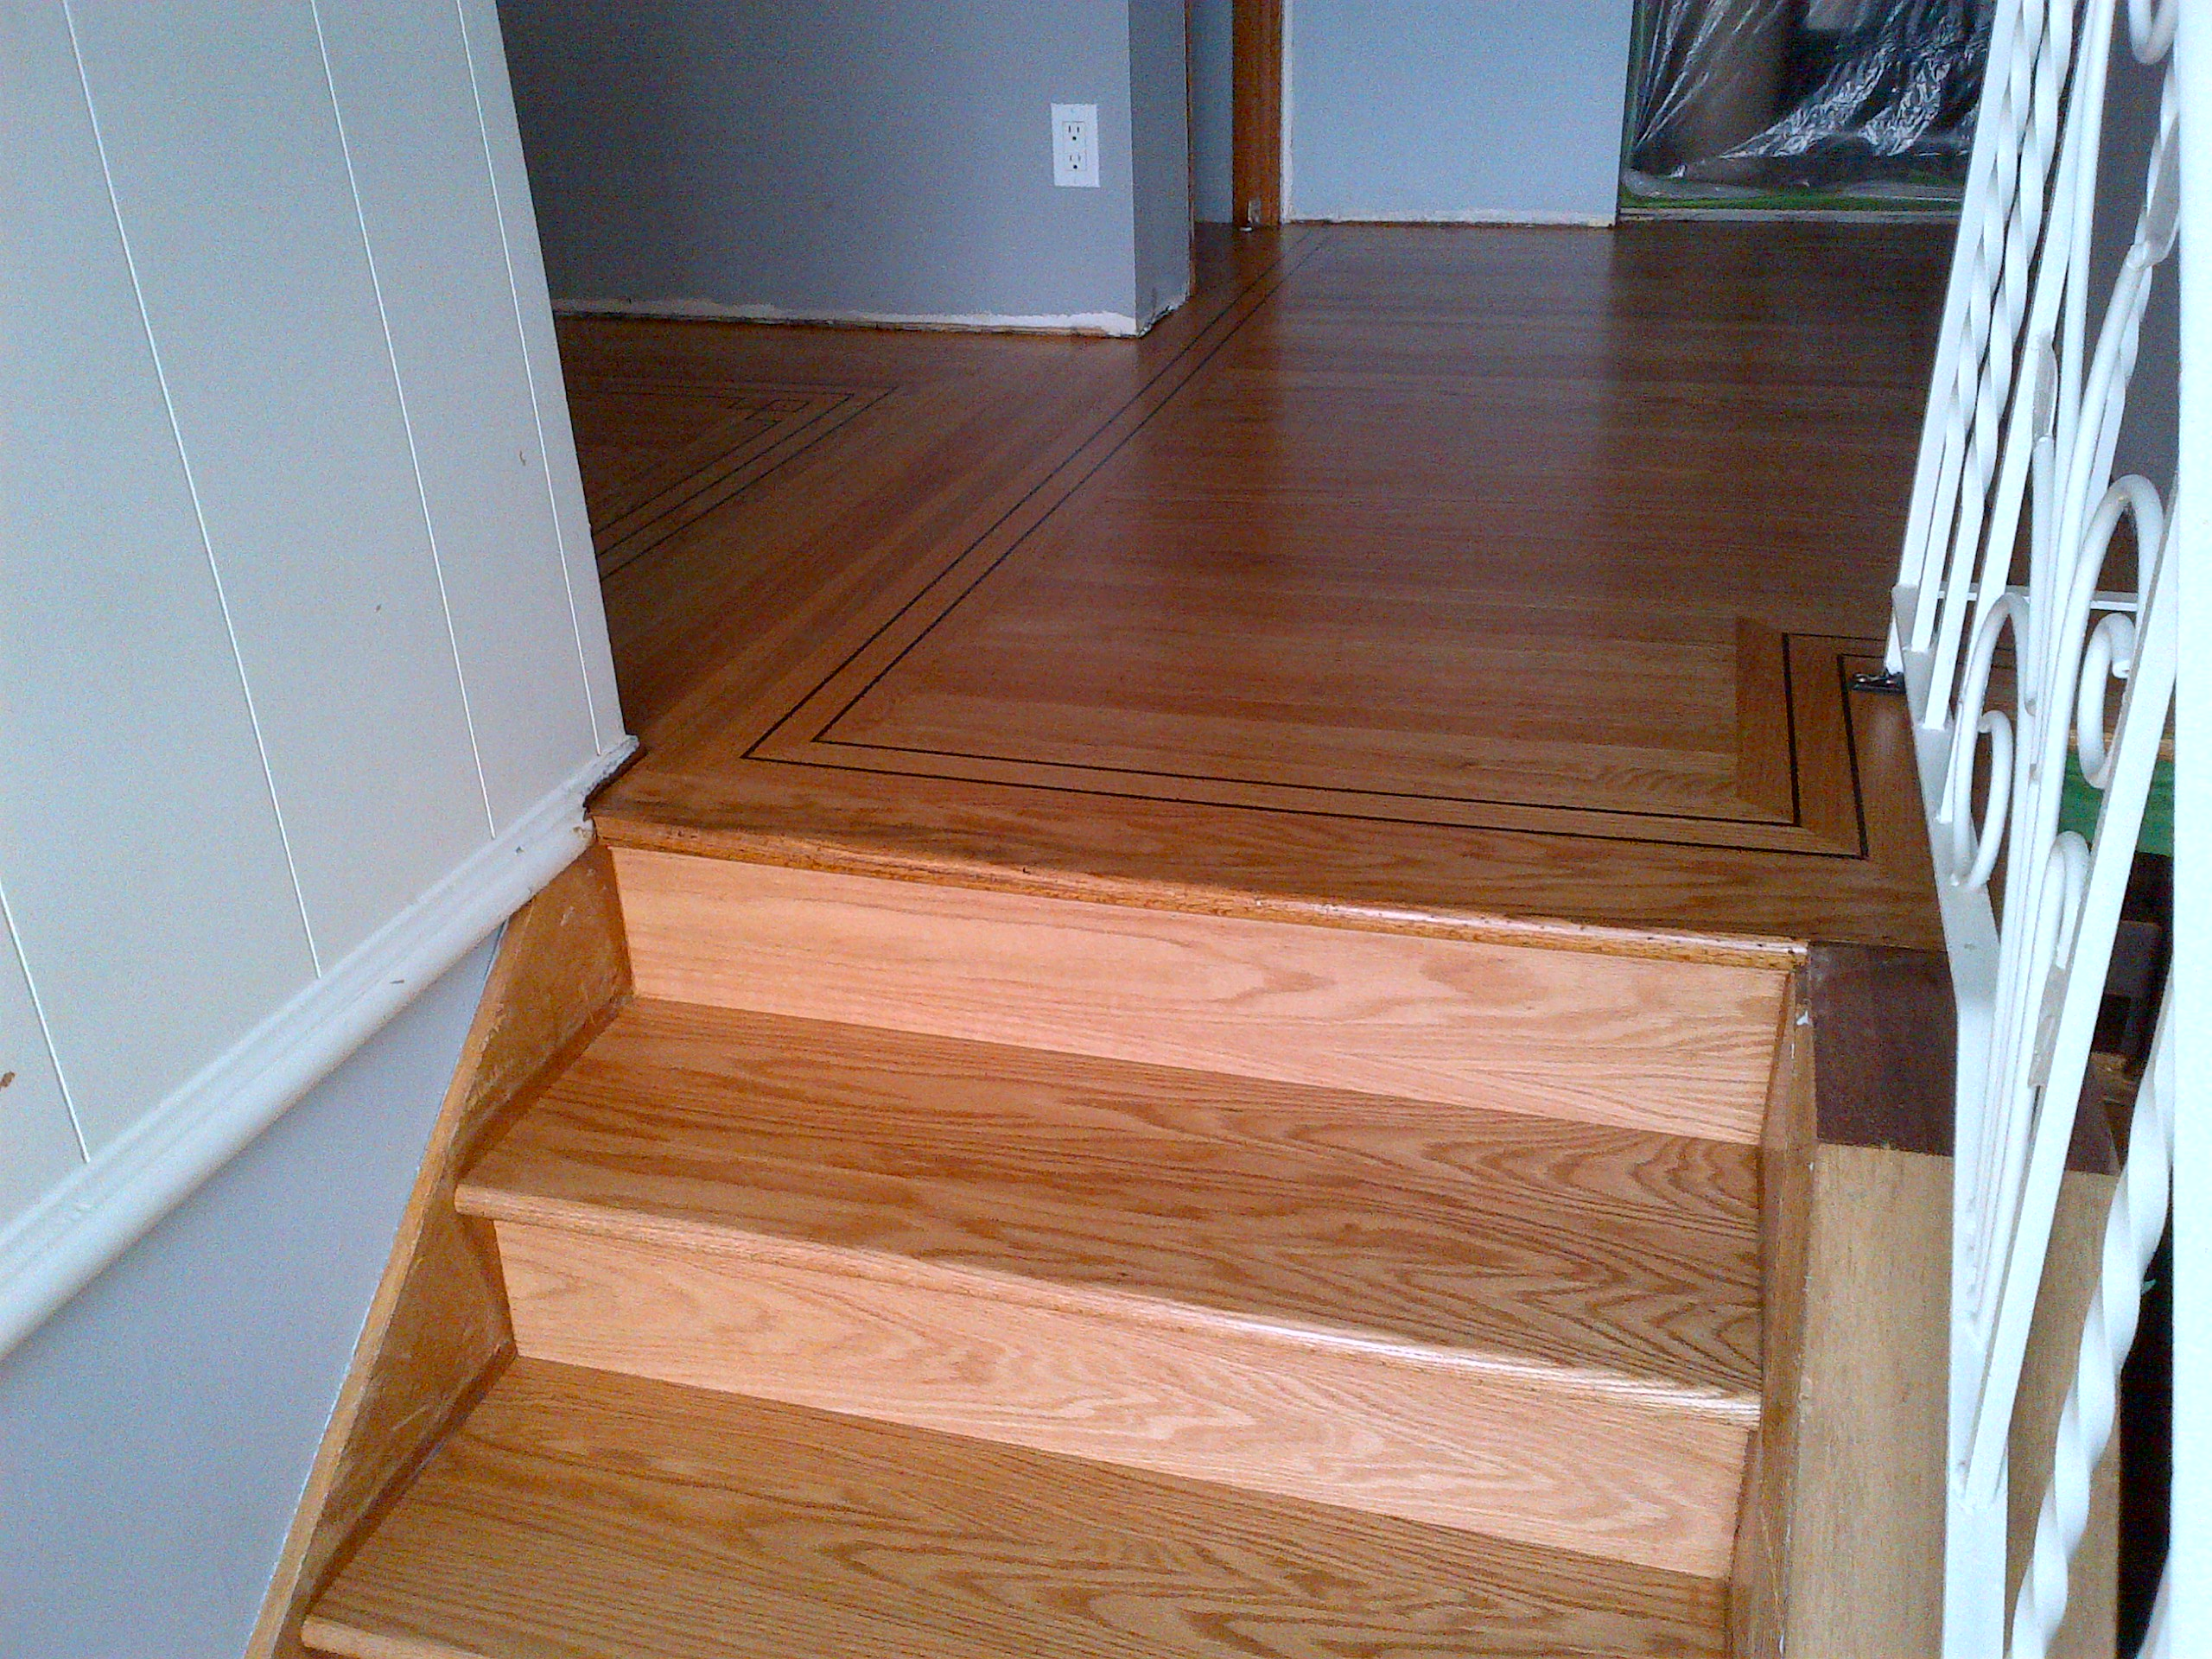 Ahf hardwood floor sanding services vancouver bc dustless for Replacing hardwood floors